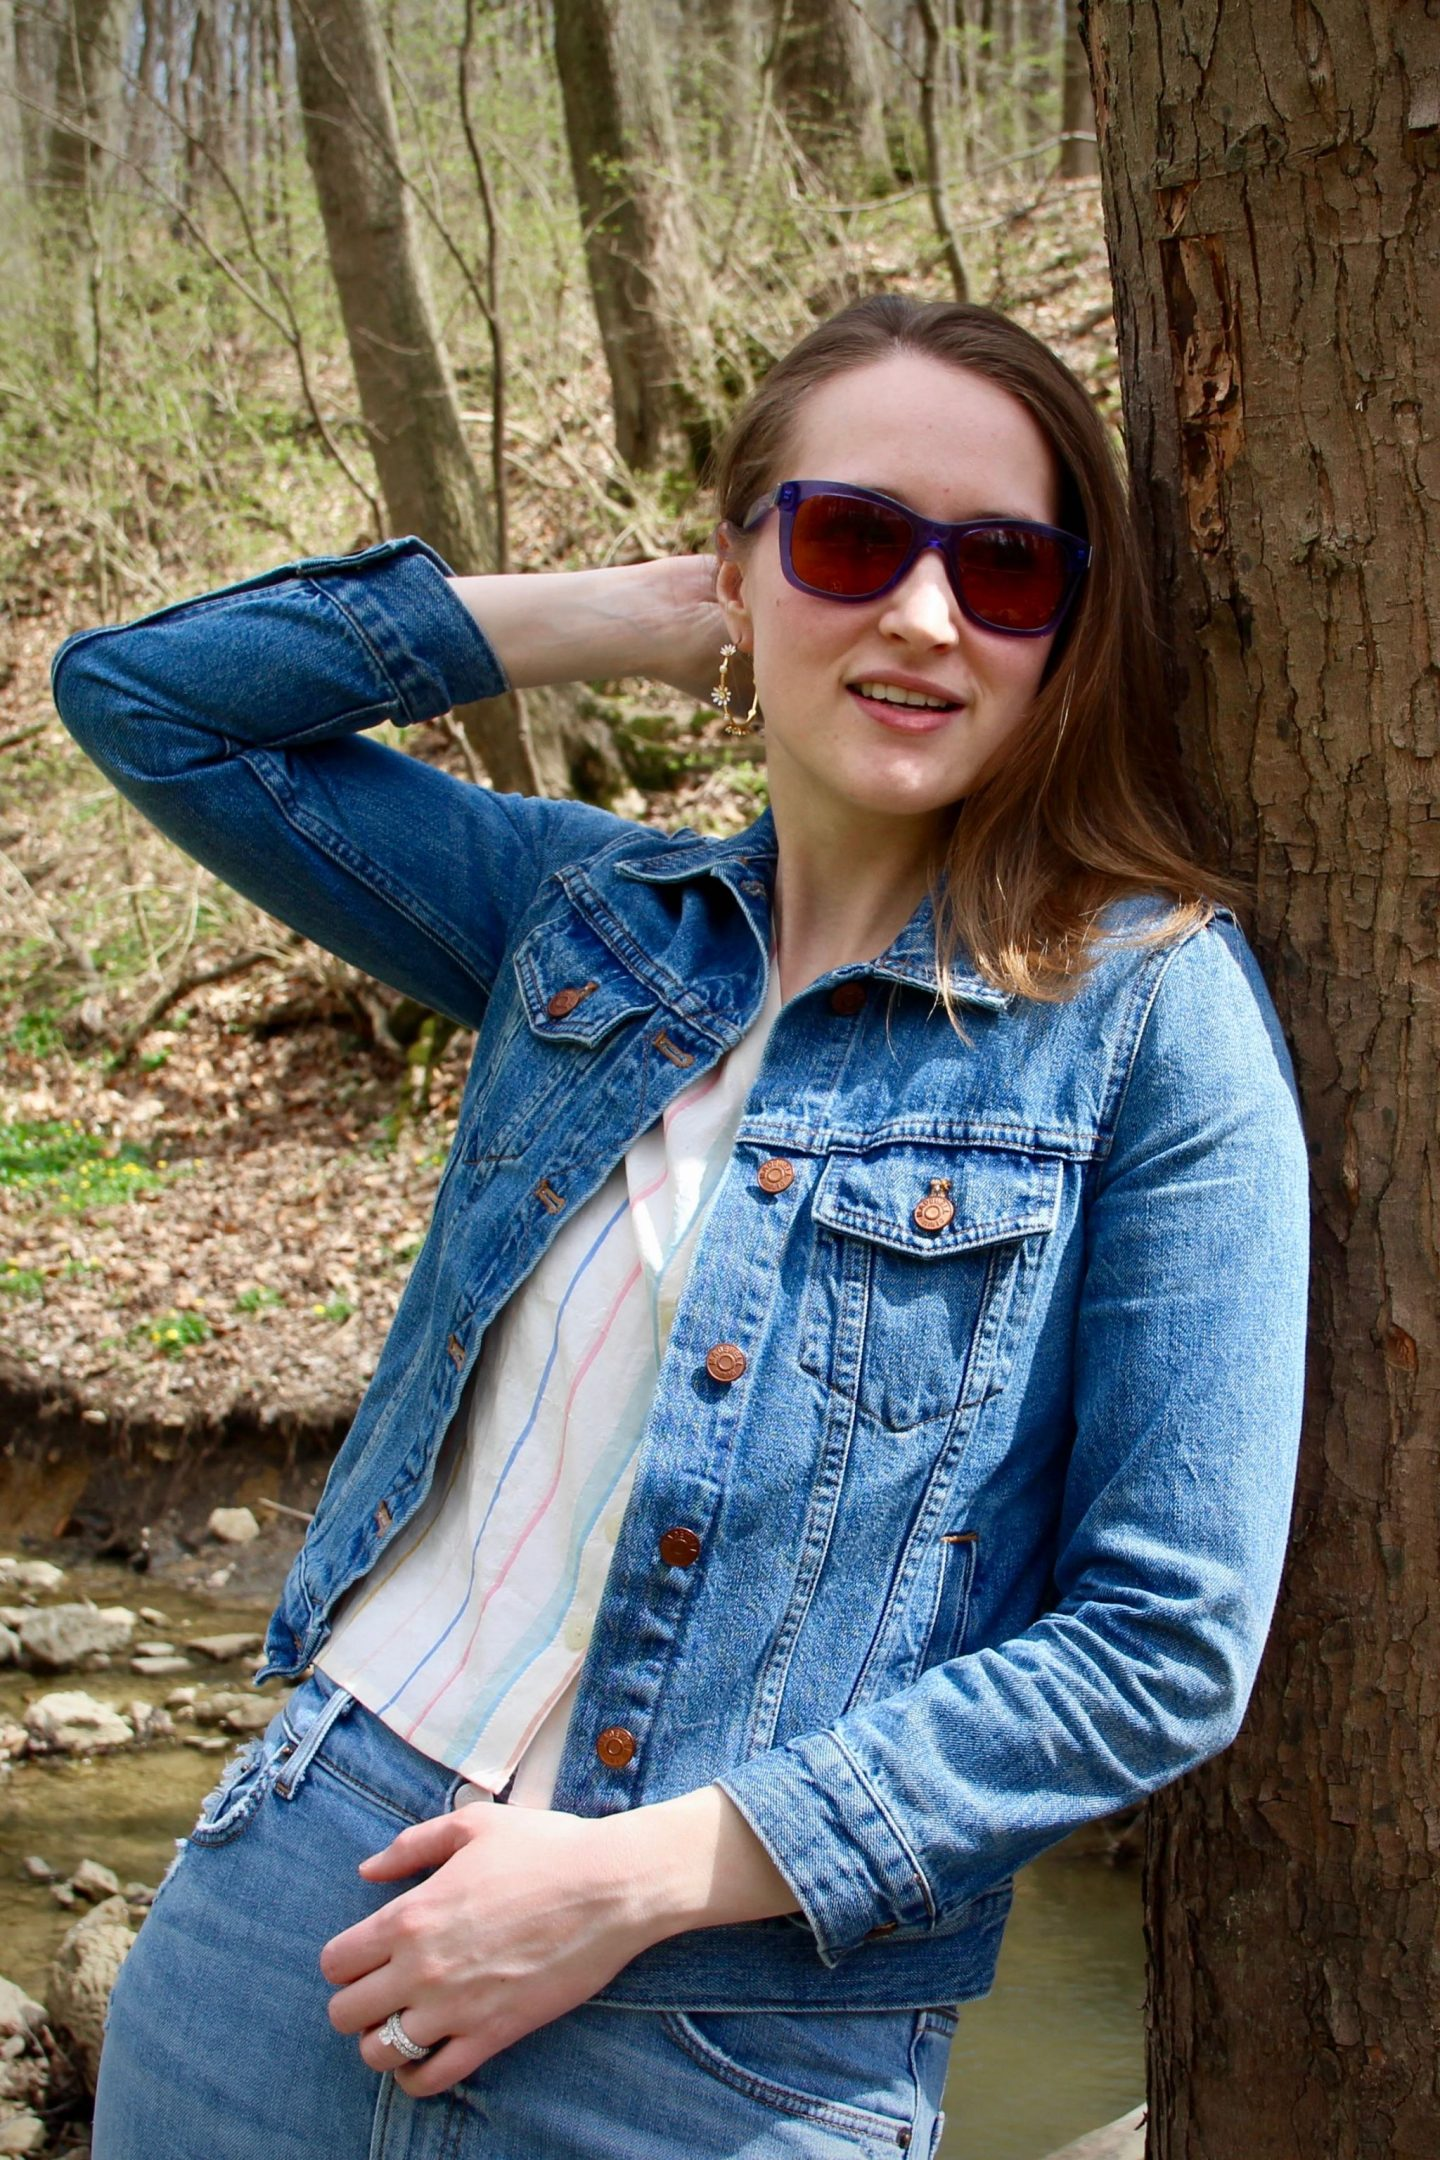 Denim Jacket Spring Style ... The Spectacular Adventurer